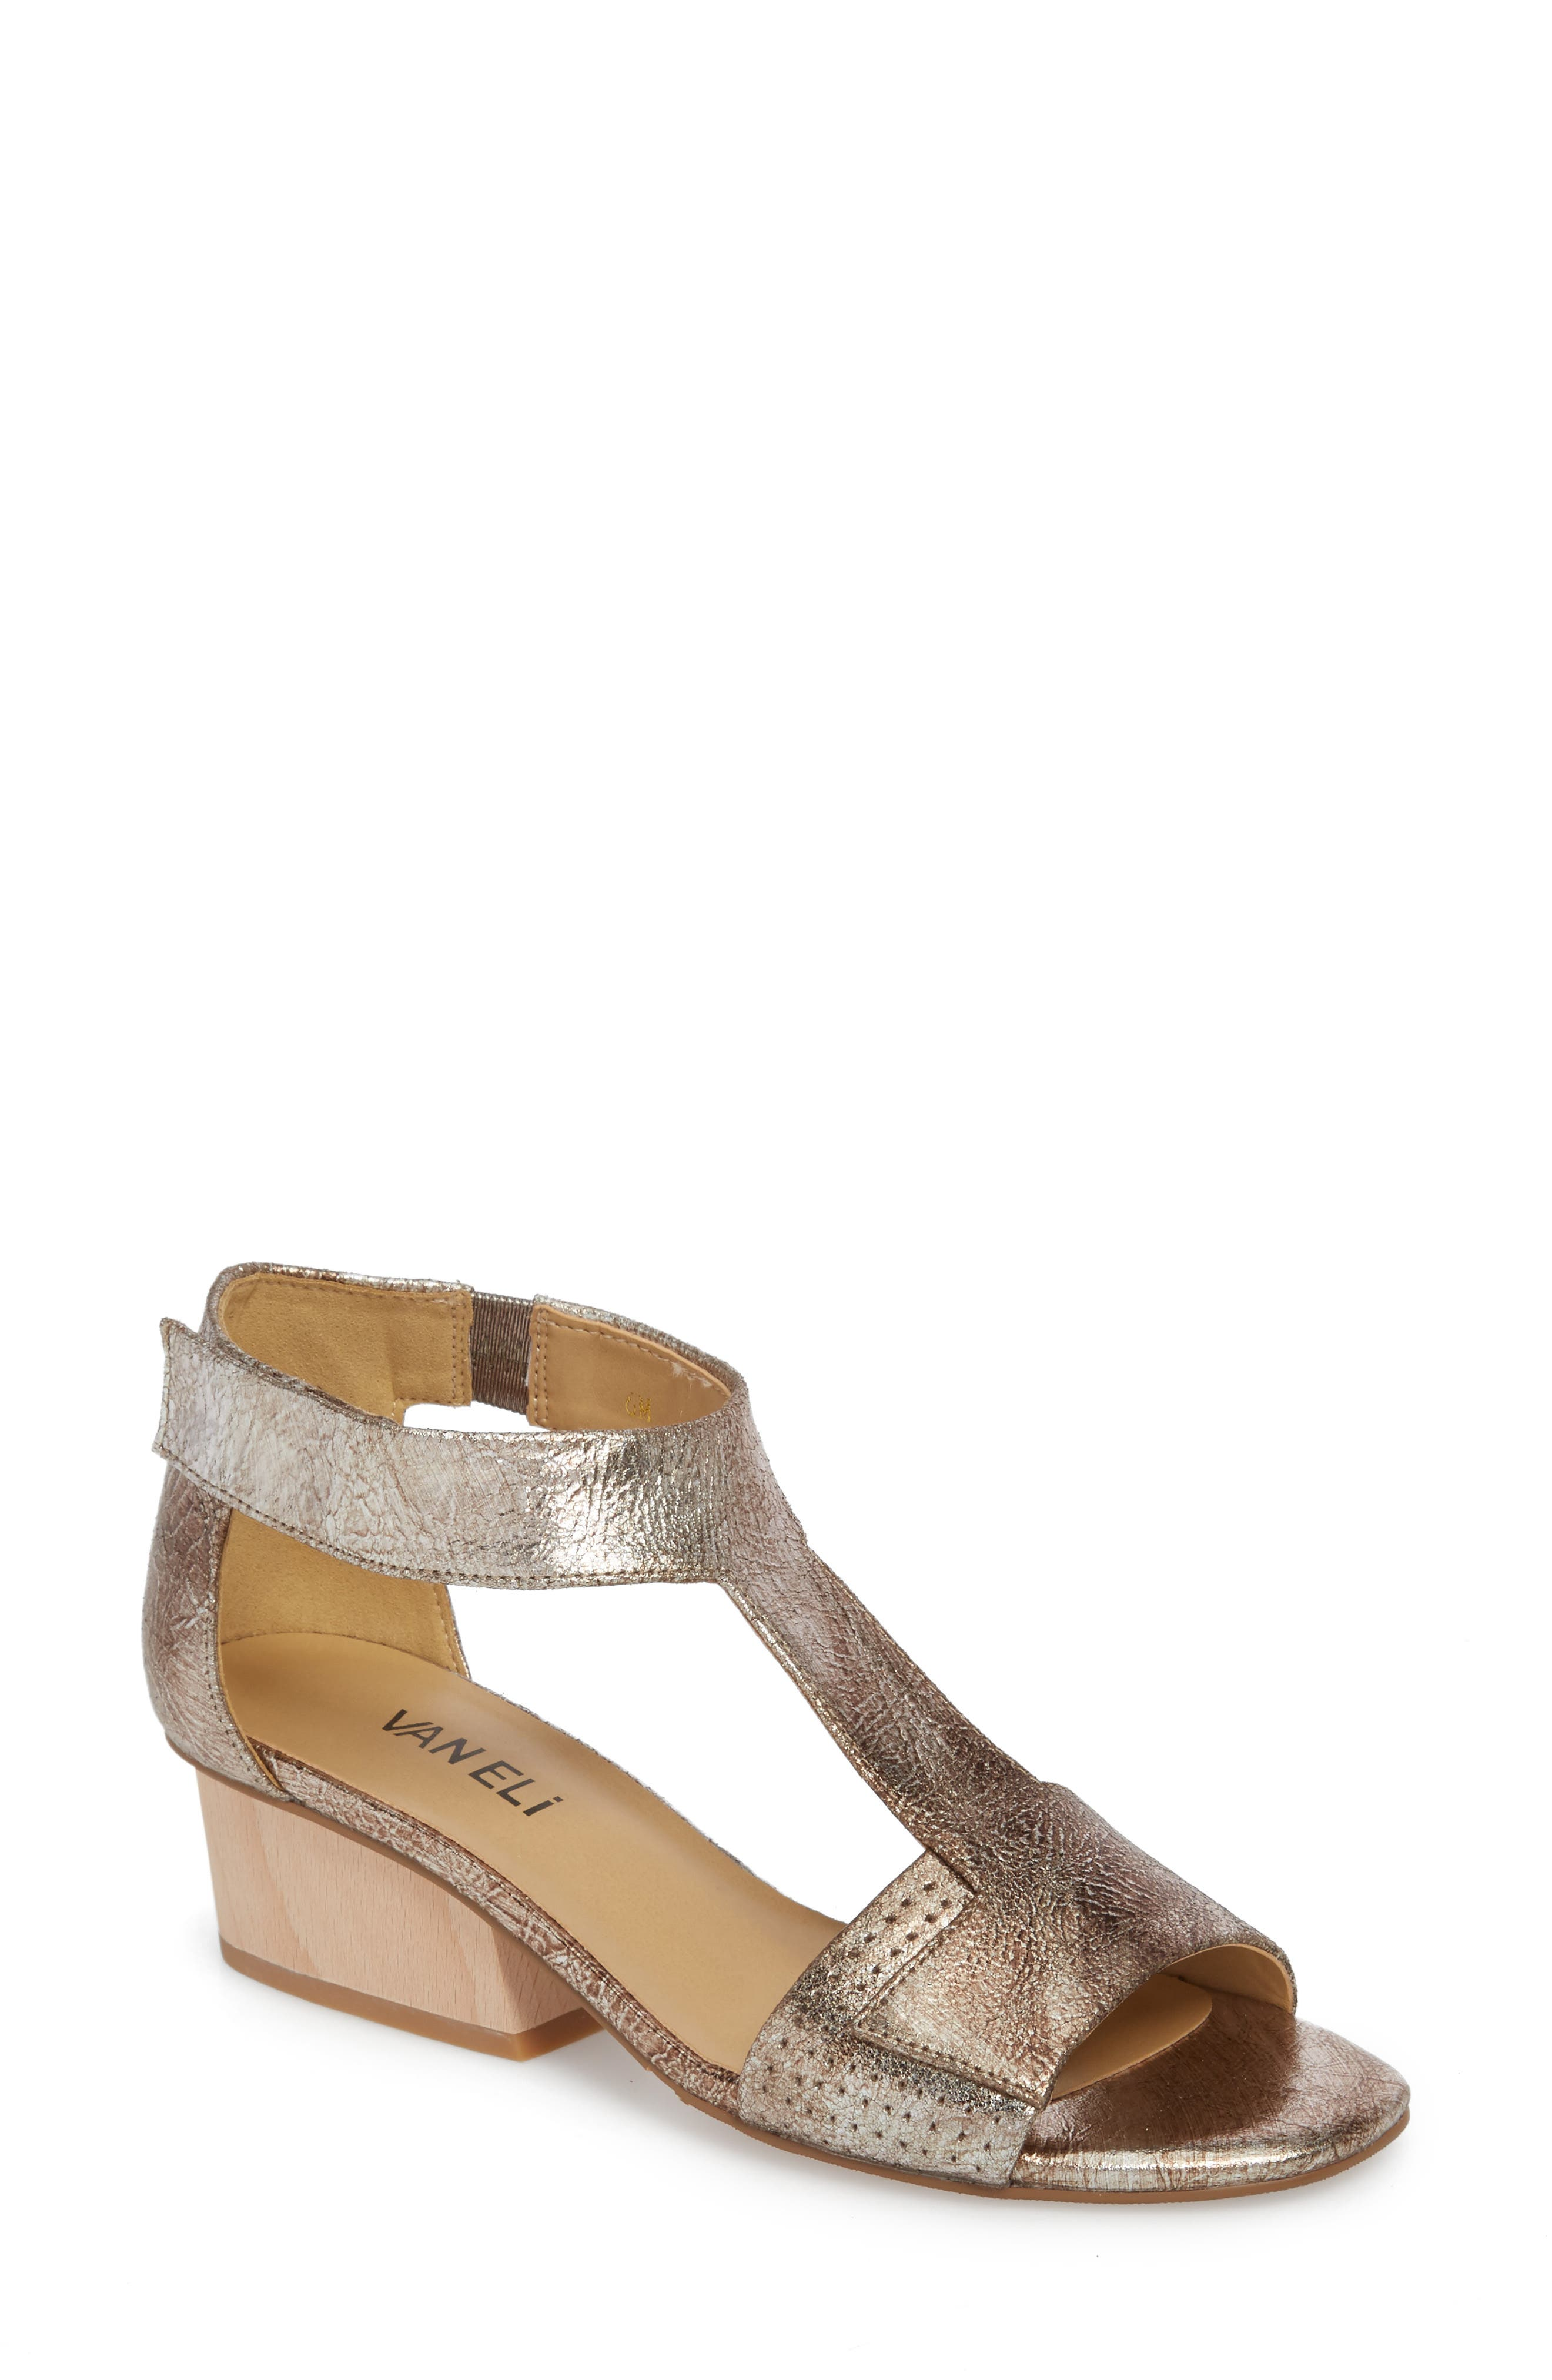 Calyx Block Heel Sandal,                         Main,                         color, Grey Leather